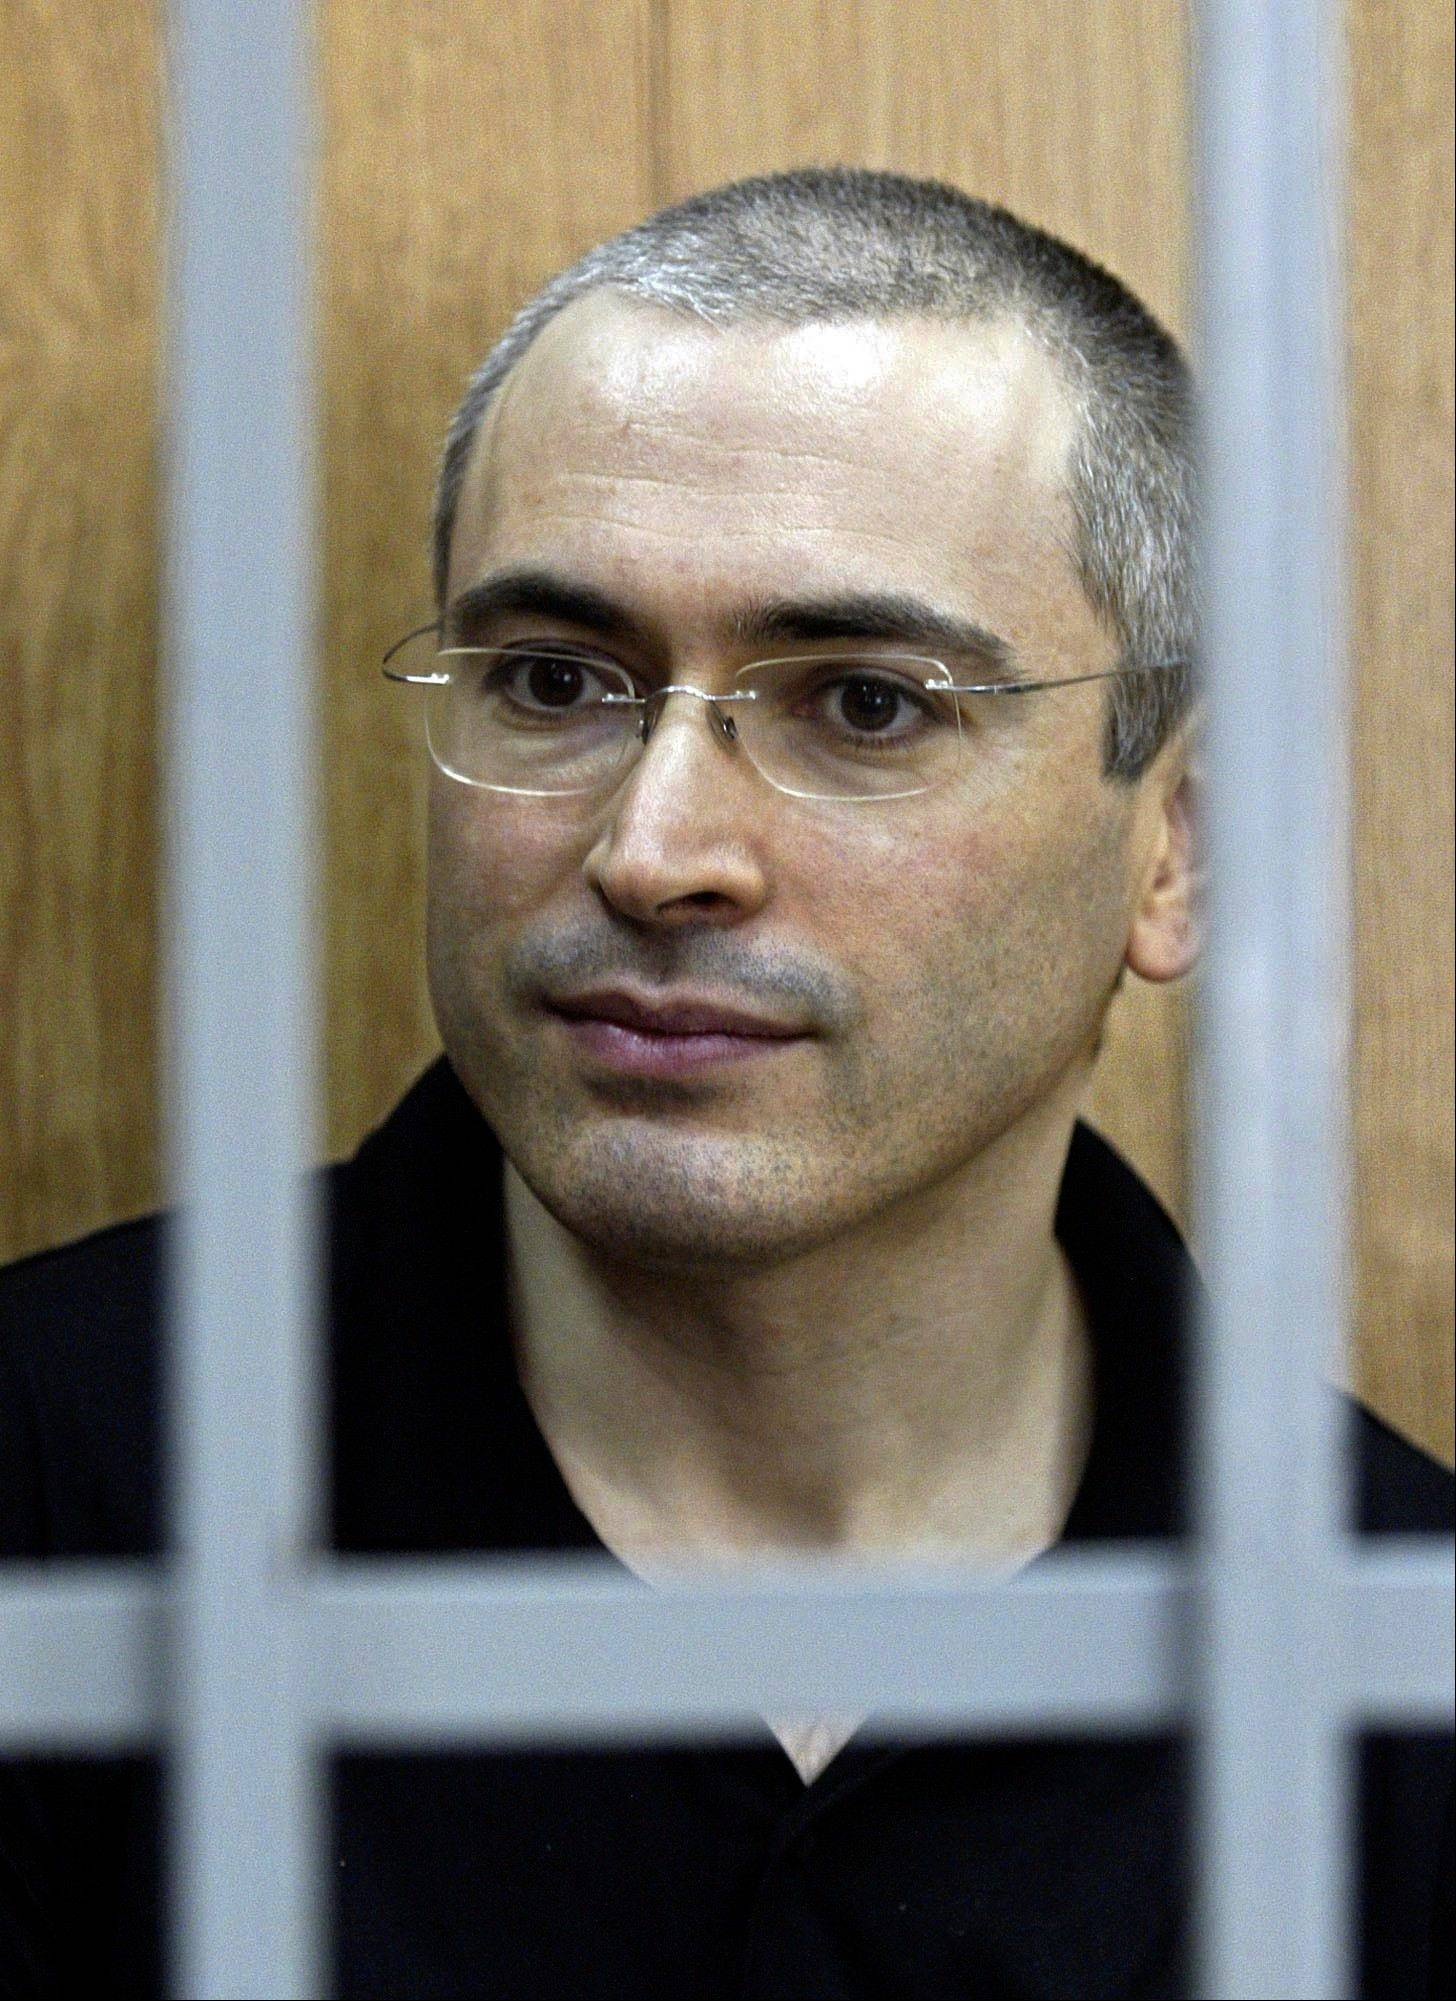 President Vladimir Putin said Thursday he will pardon jailed oil tycoon Mikhail Khodorkovsky, a surprise decision that will let his top foe and Russia�s formerly richest man out of prison after more than a decade.